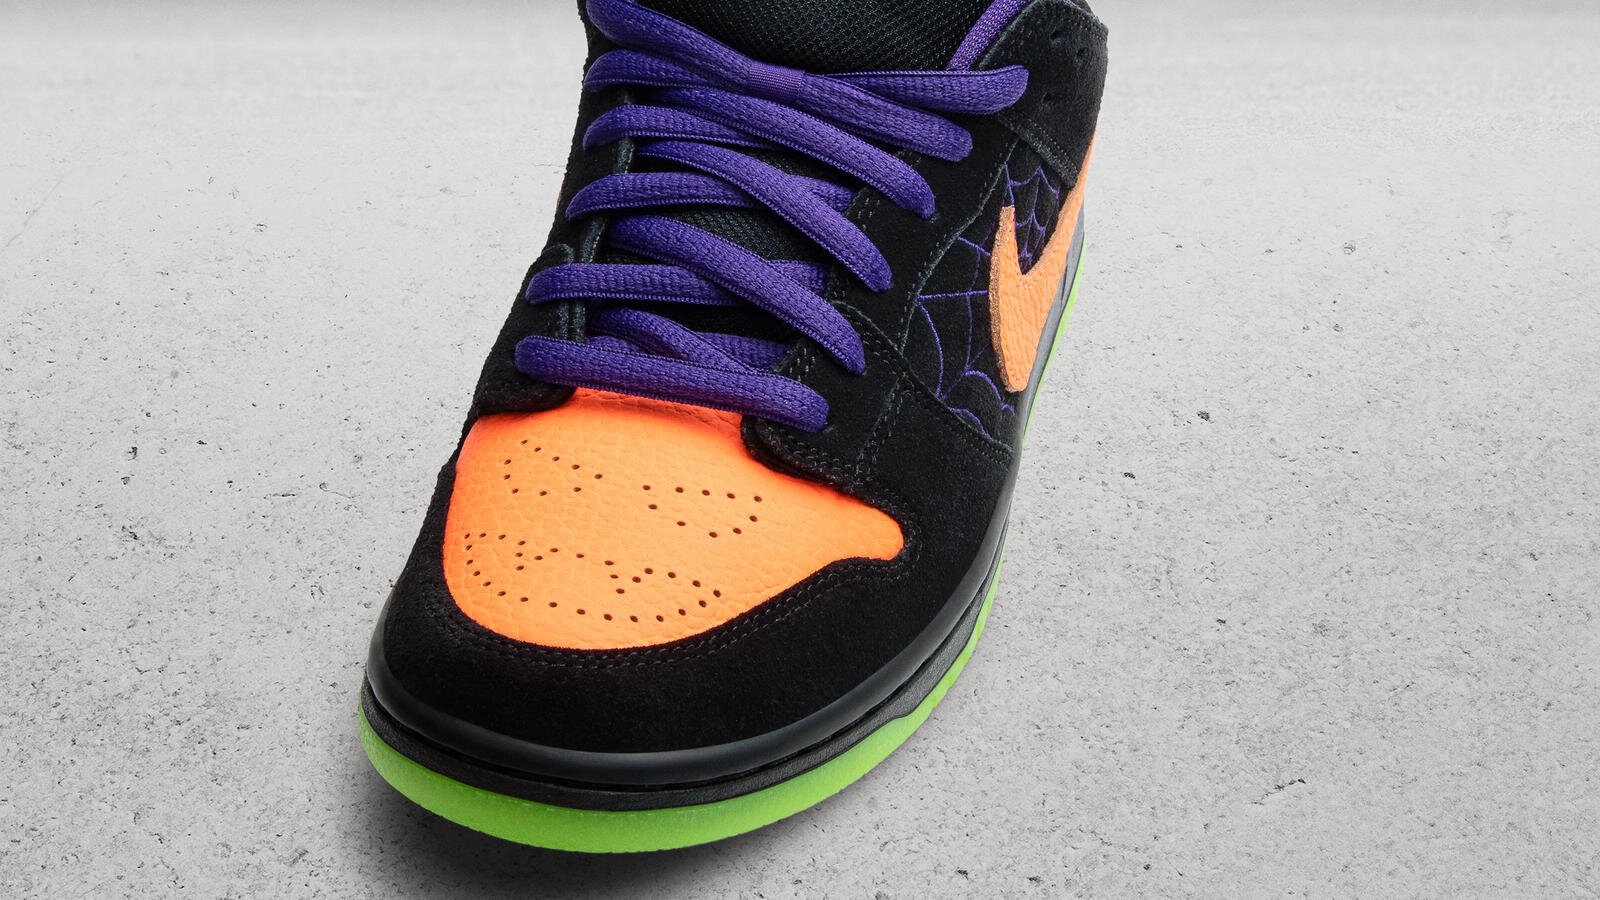 NikeNews_FeaturedFootwear_NikeSB_DunkLo_NightOfMischief_2619_hd_1600.jpg